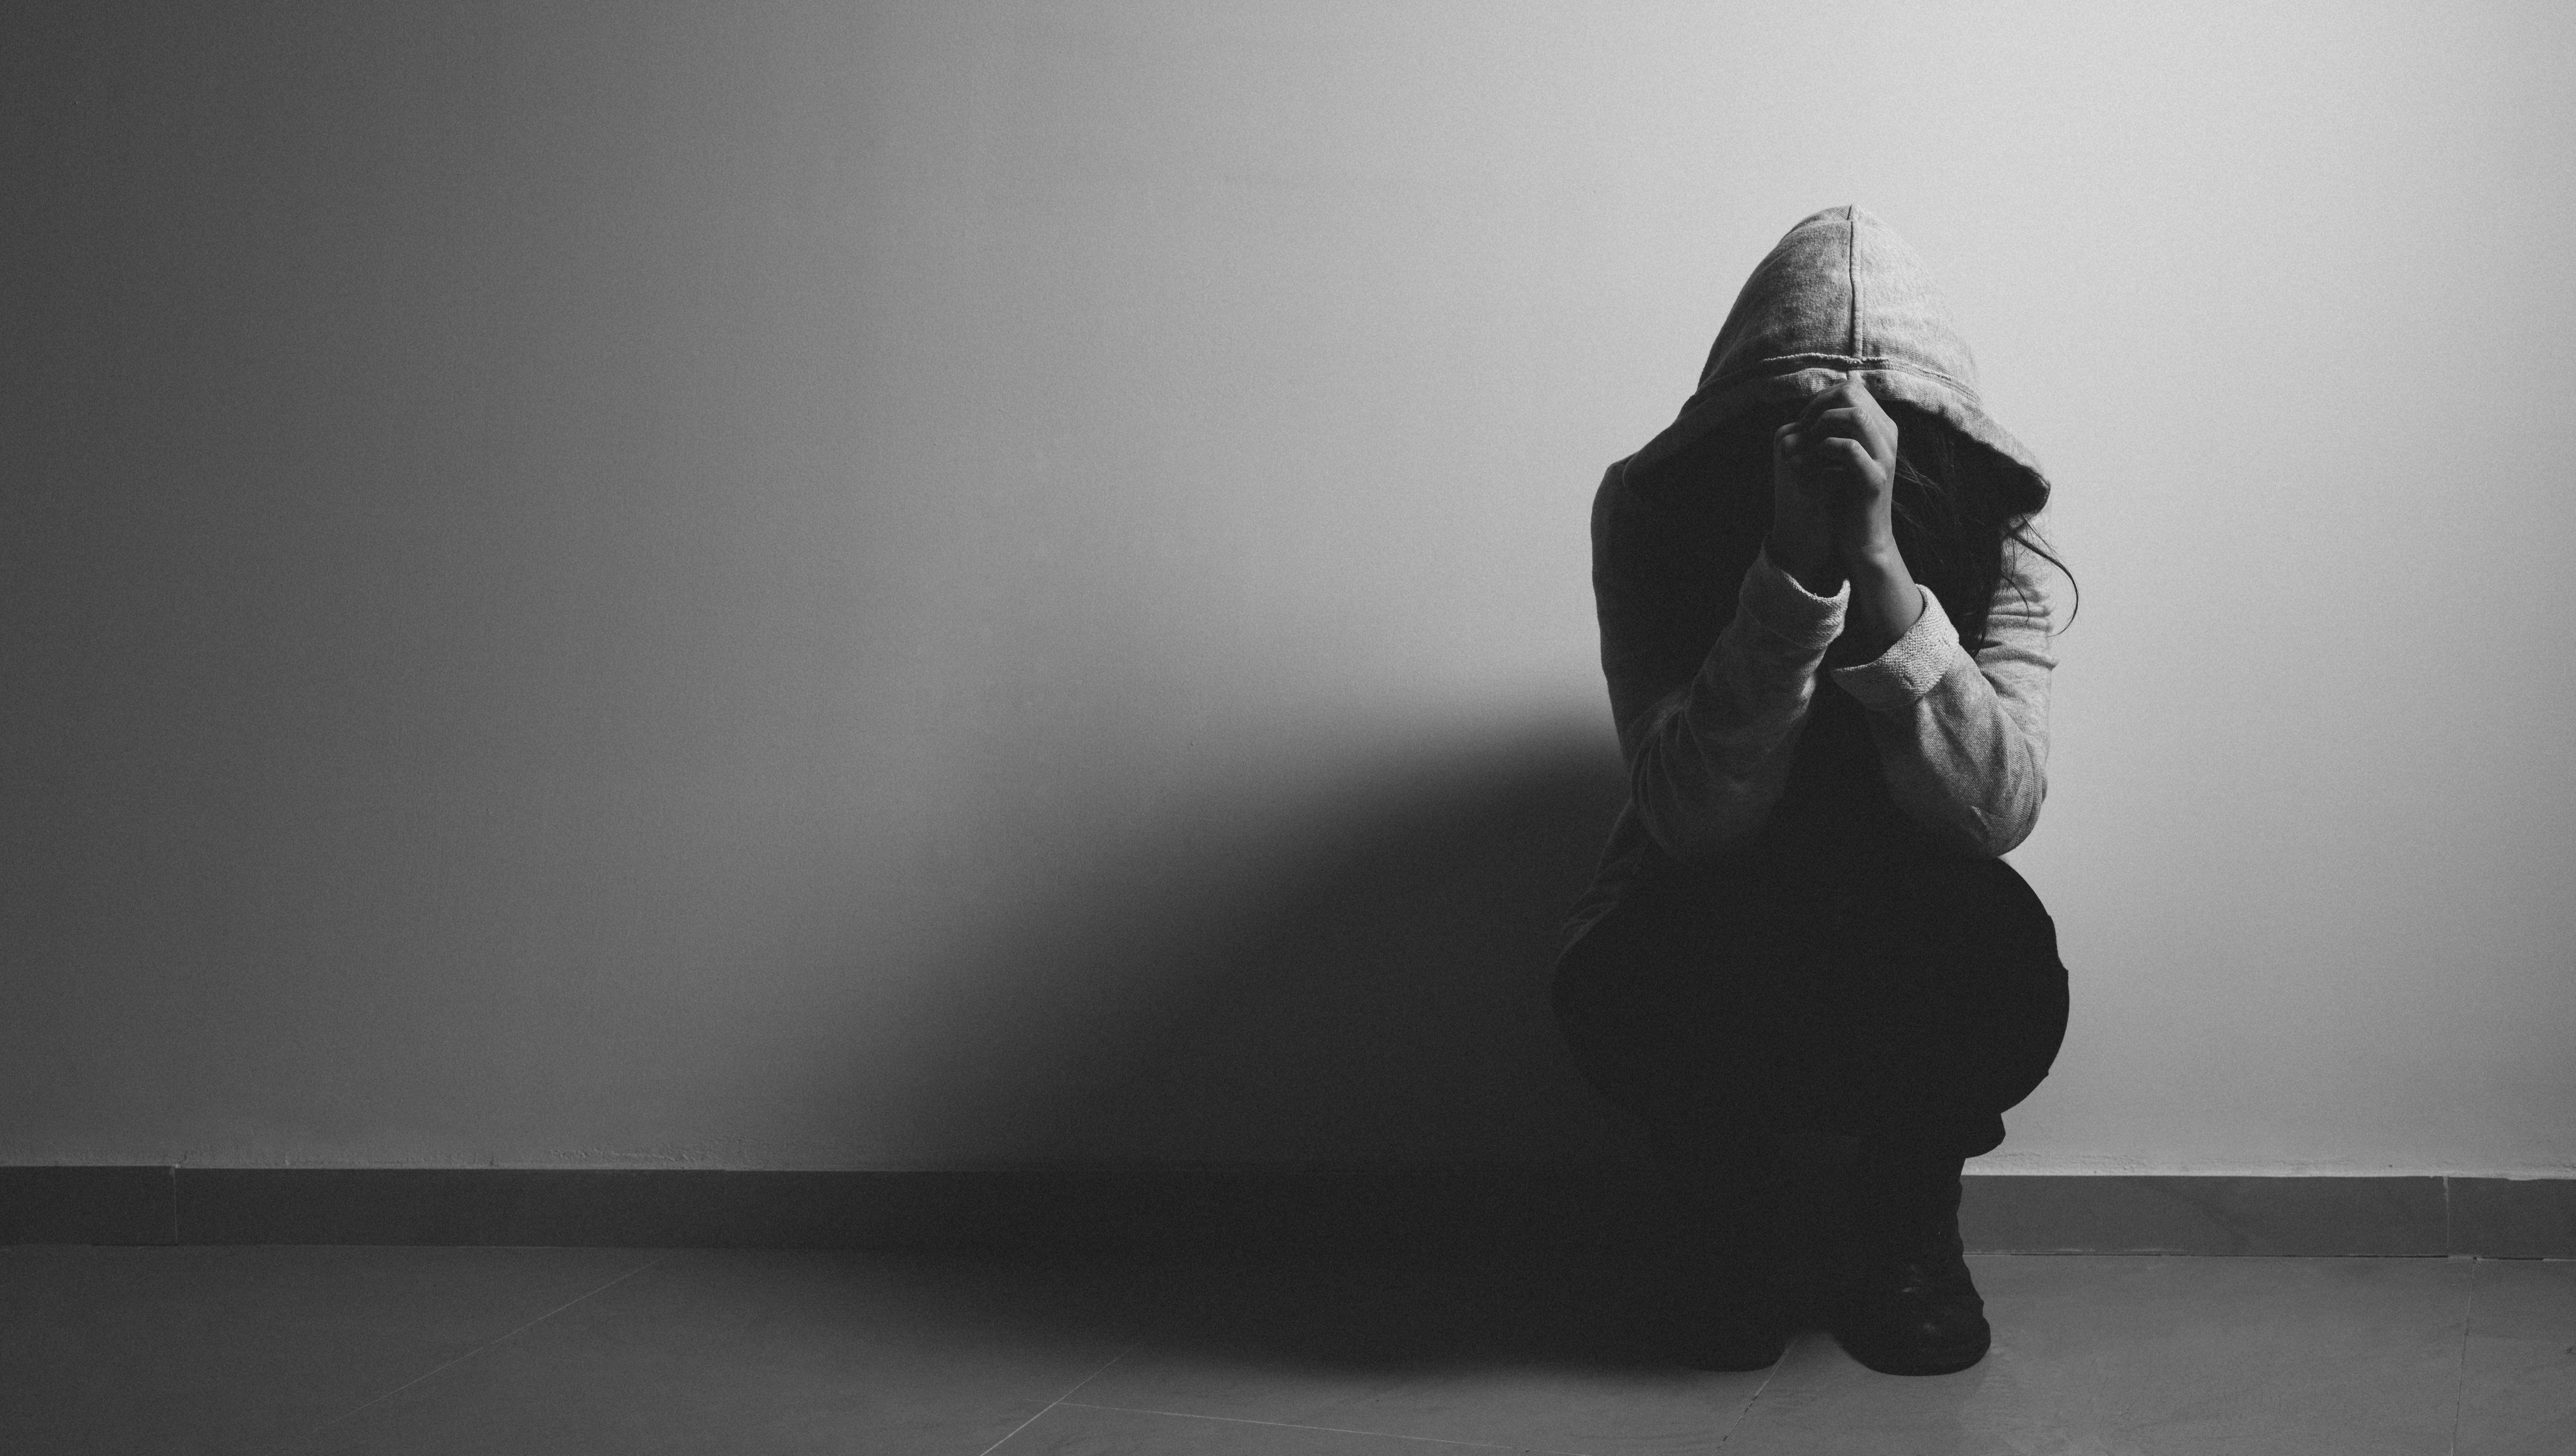 Things to remember when dating someone with depression